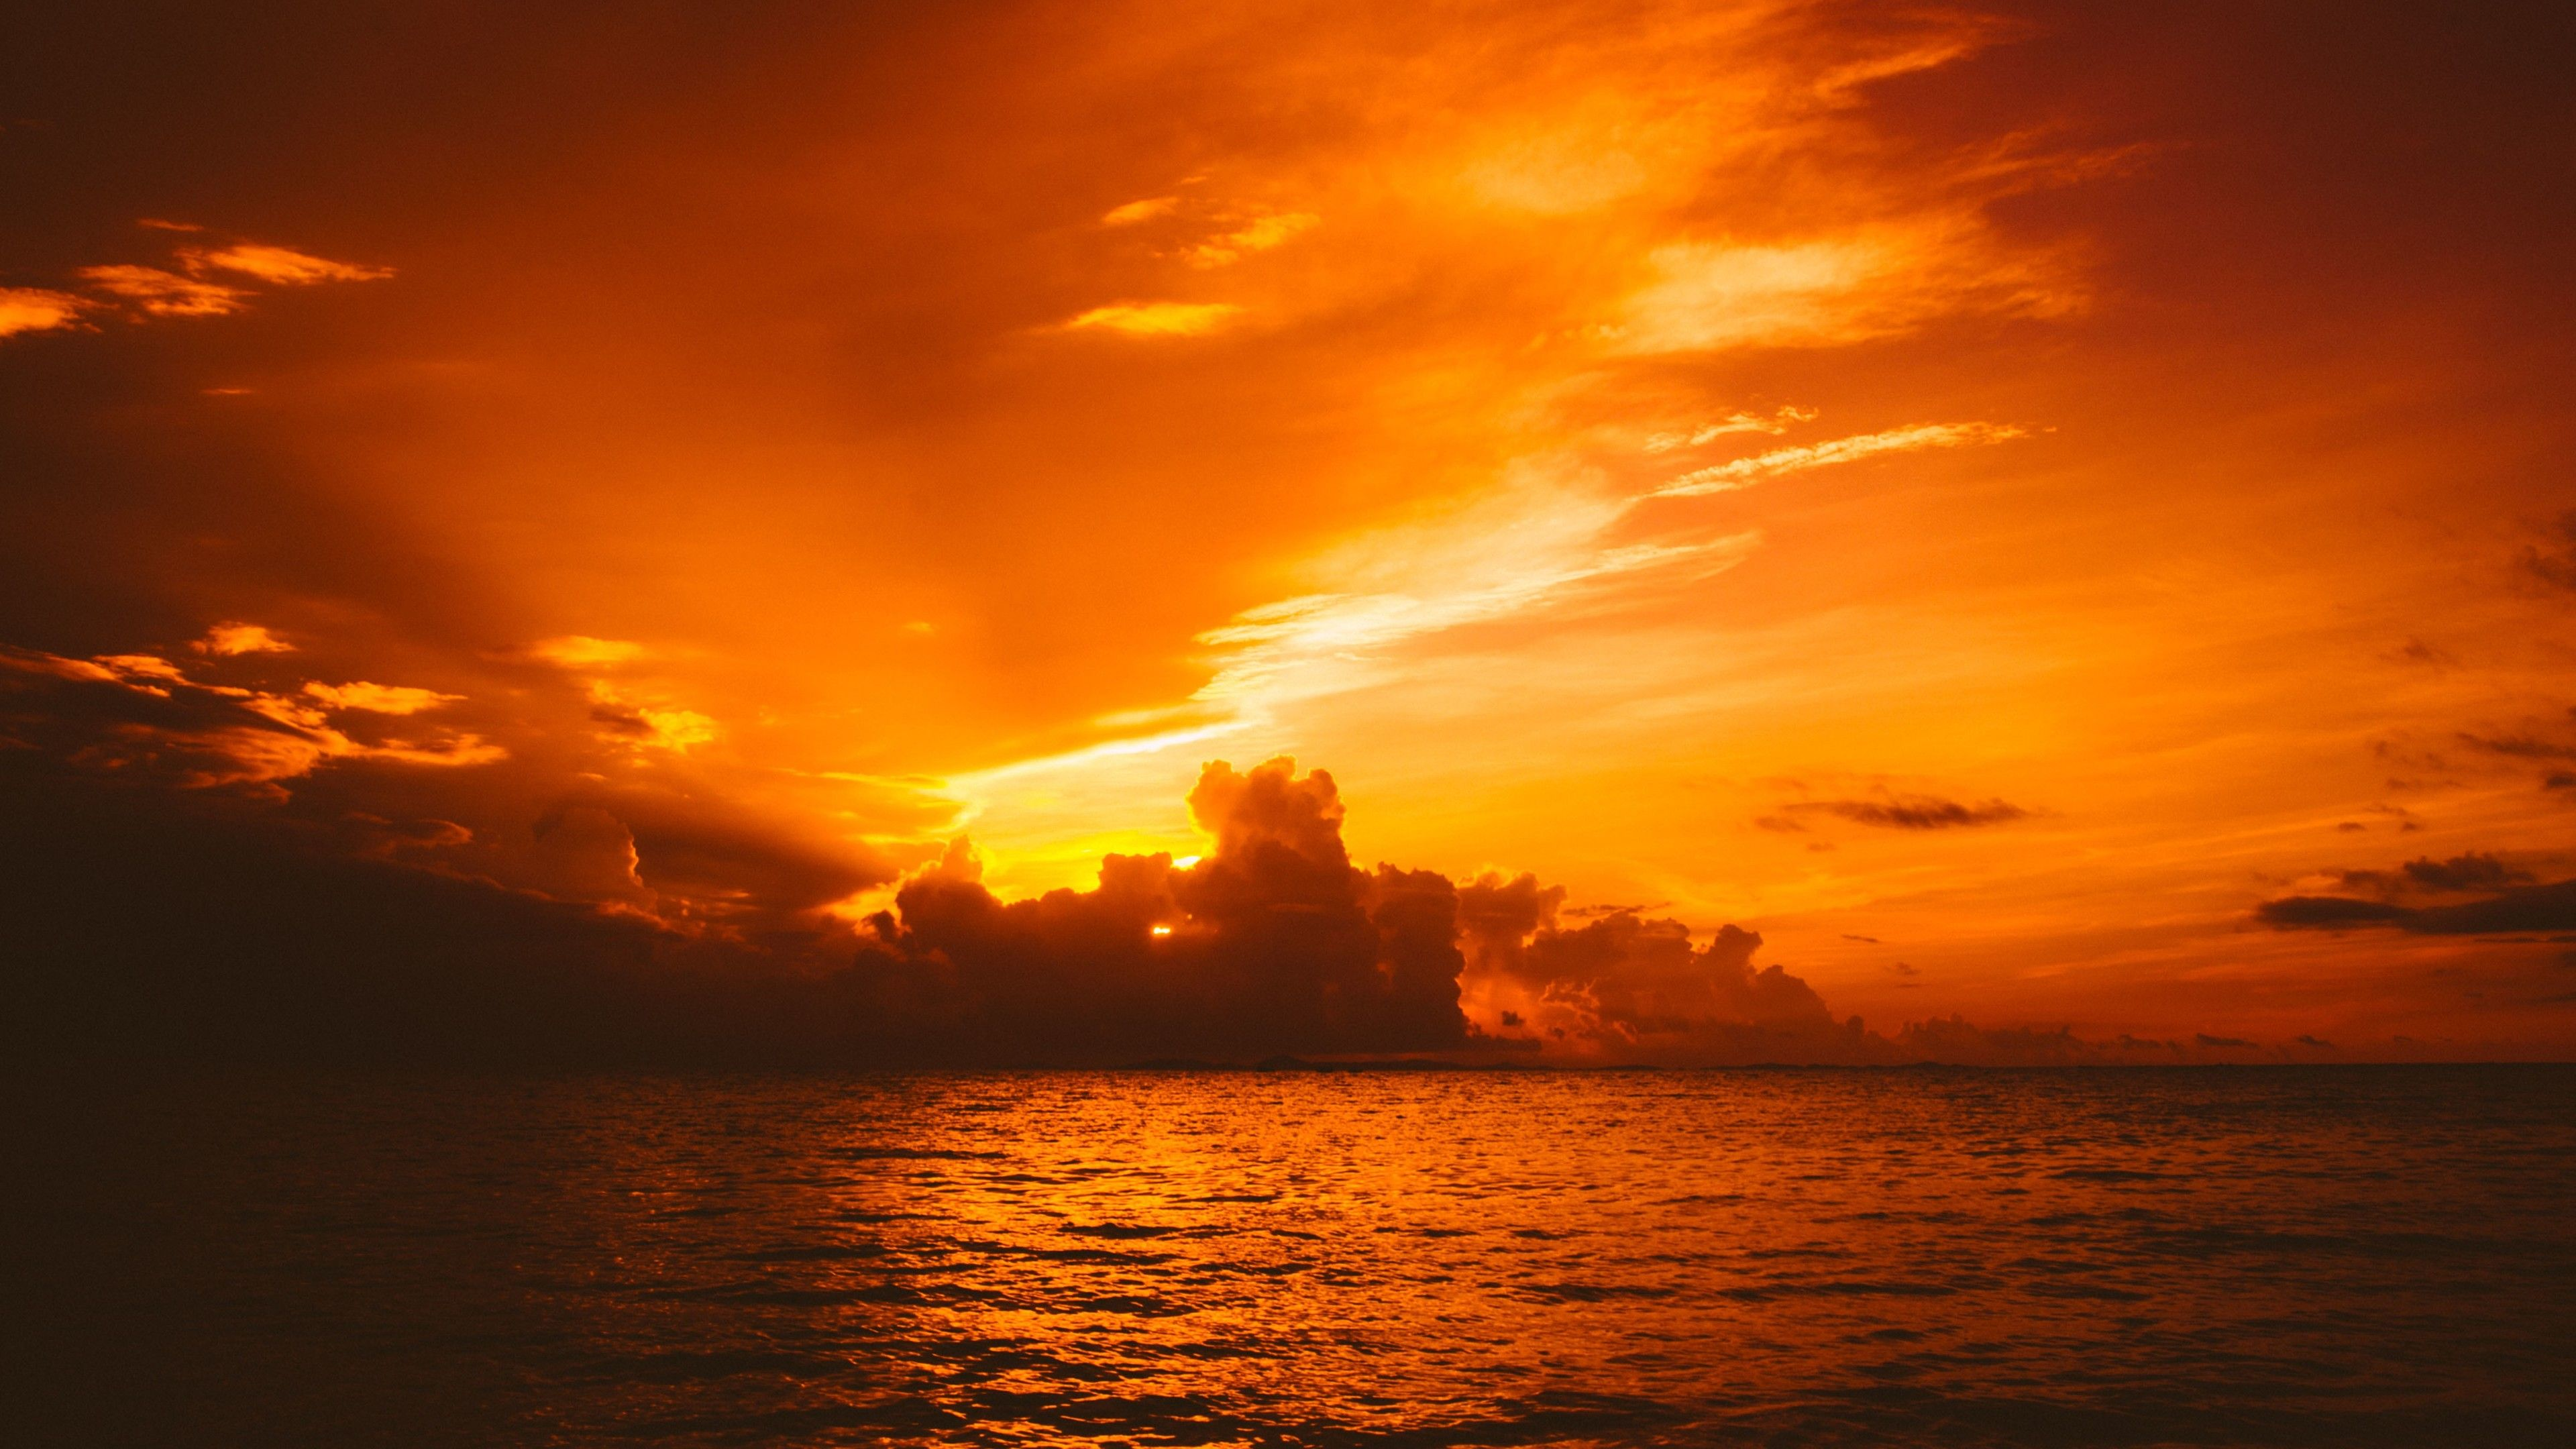 Sun In Clouds Sea Nature 4k Sunset Wallpapers Sunrise Wallpapers Sea Wallpapers Nature Wallpapers Hd Wa Sunrise Wallpaper Sunset Wallpaper Nature Wallpaper